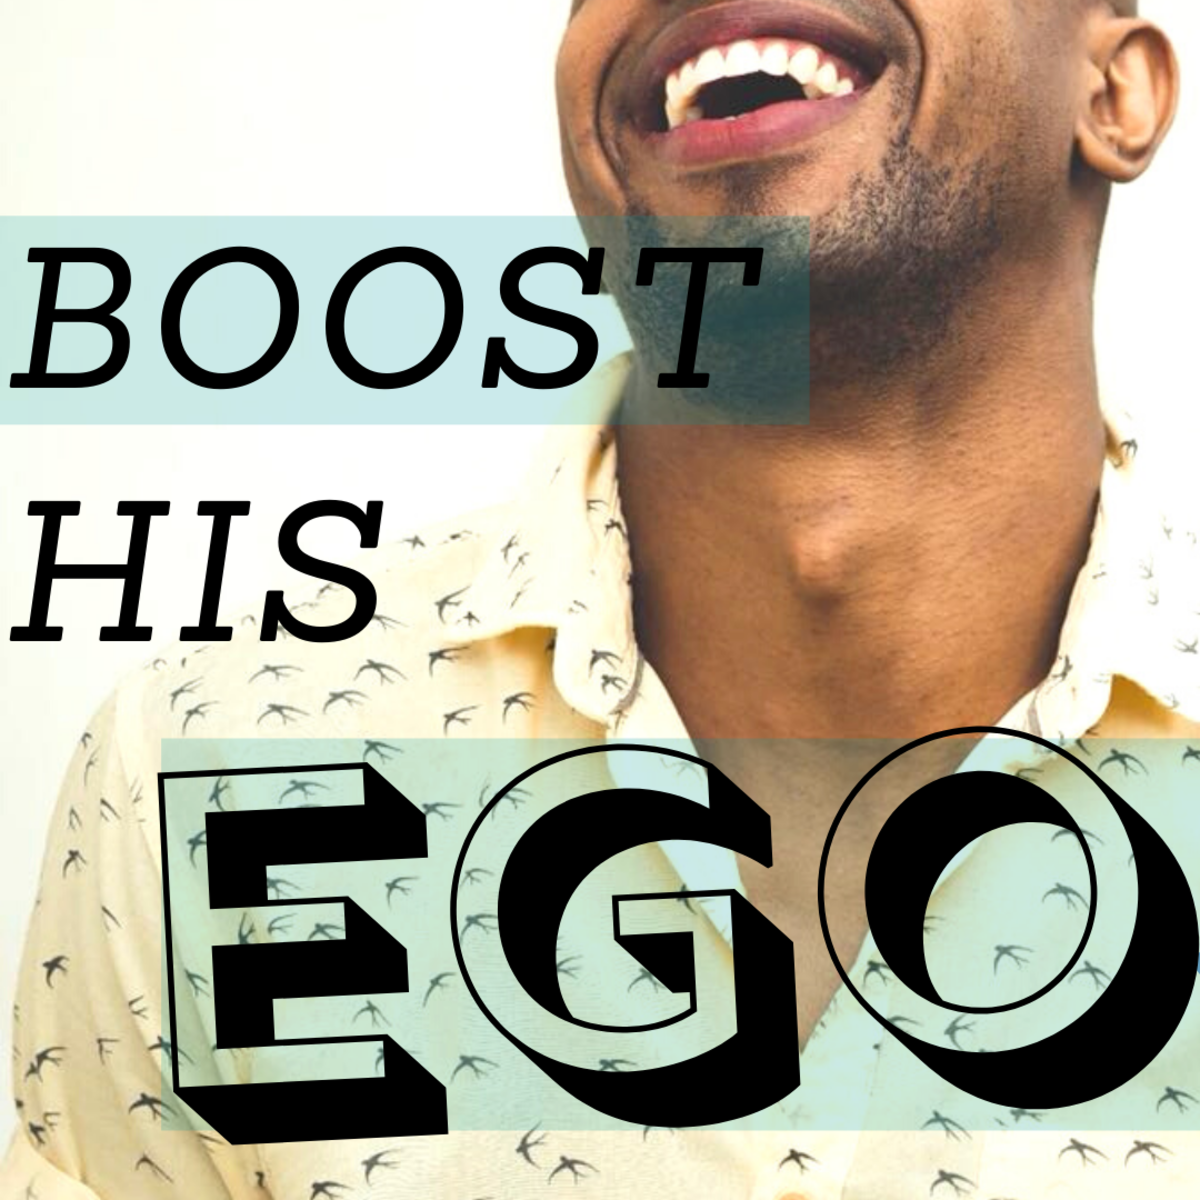 Increase a guy's confidence and self-esteem levels by stroking his ego.